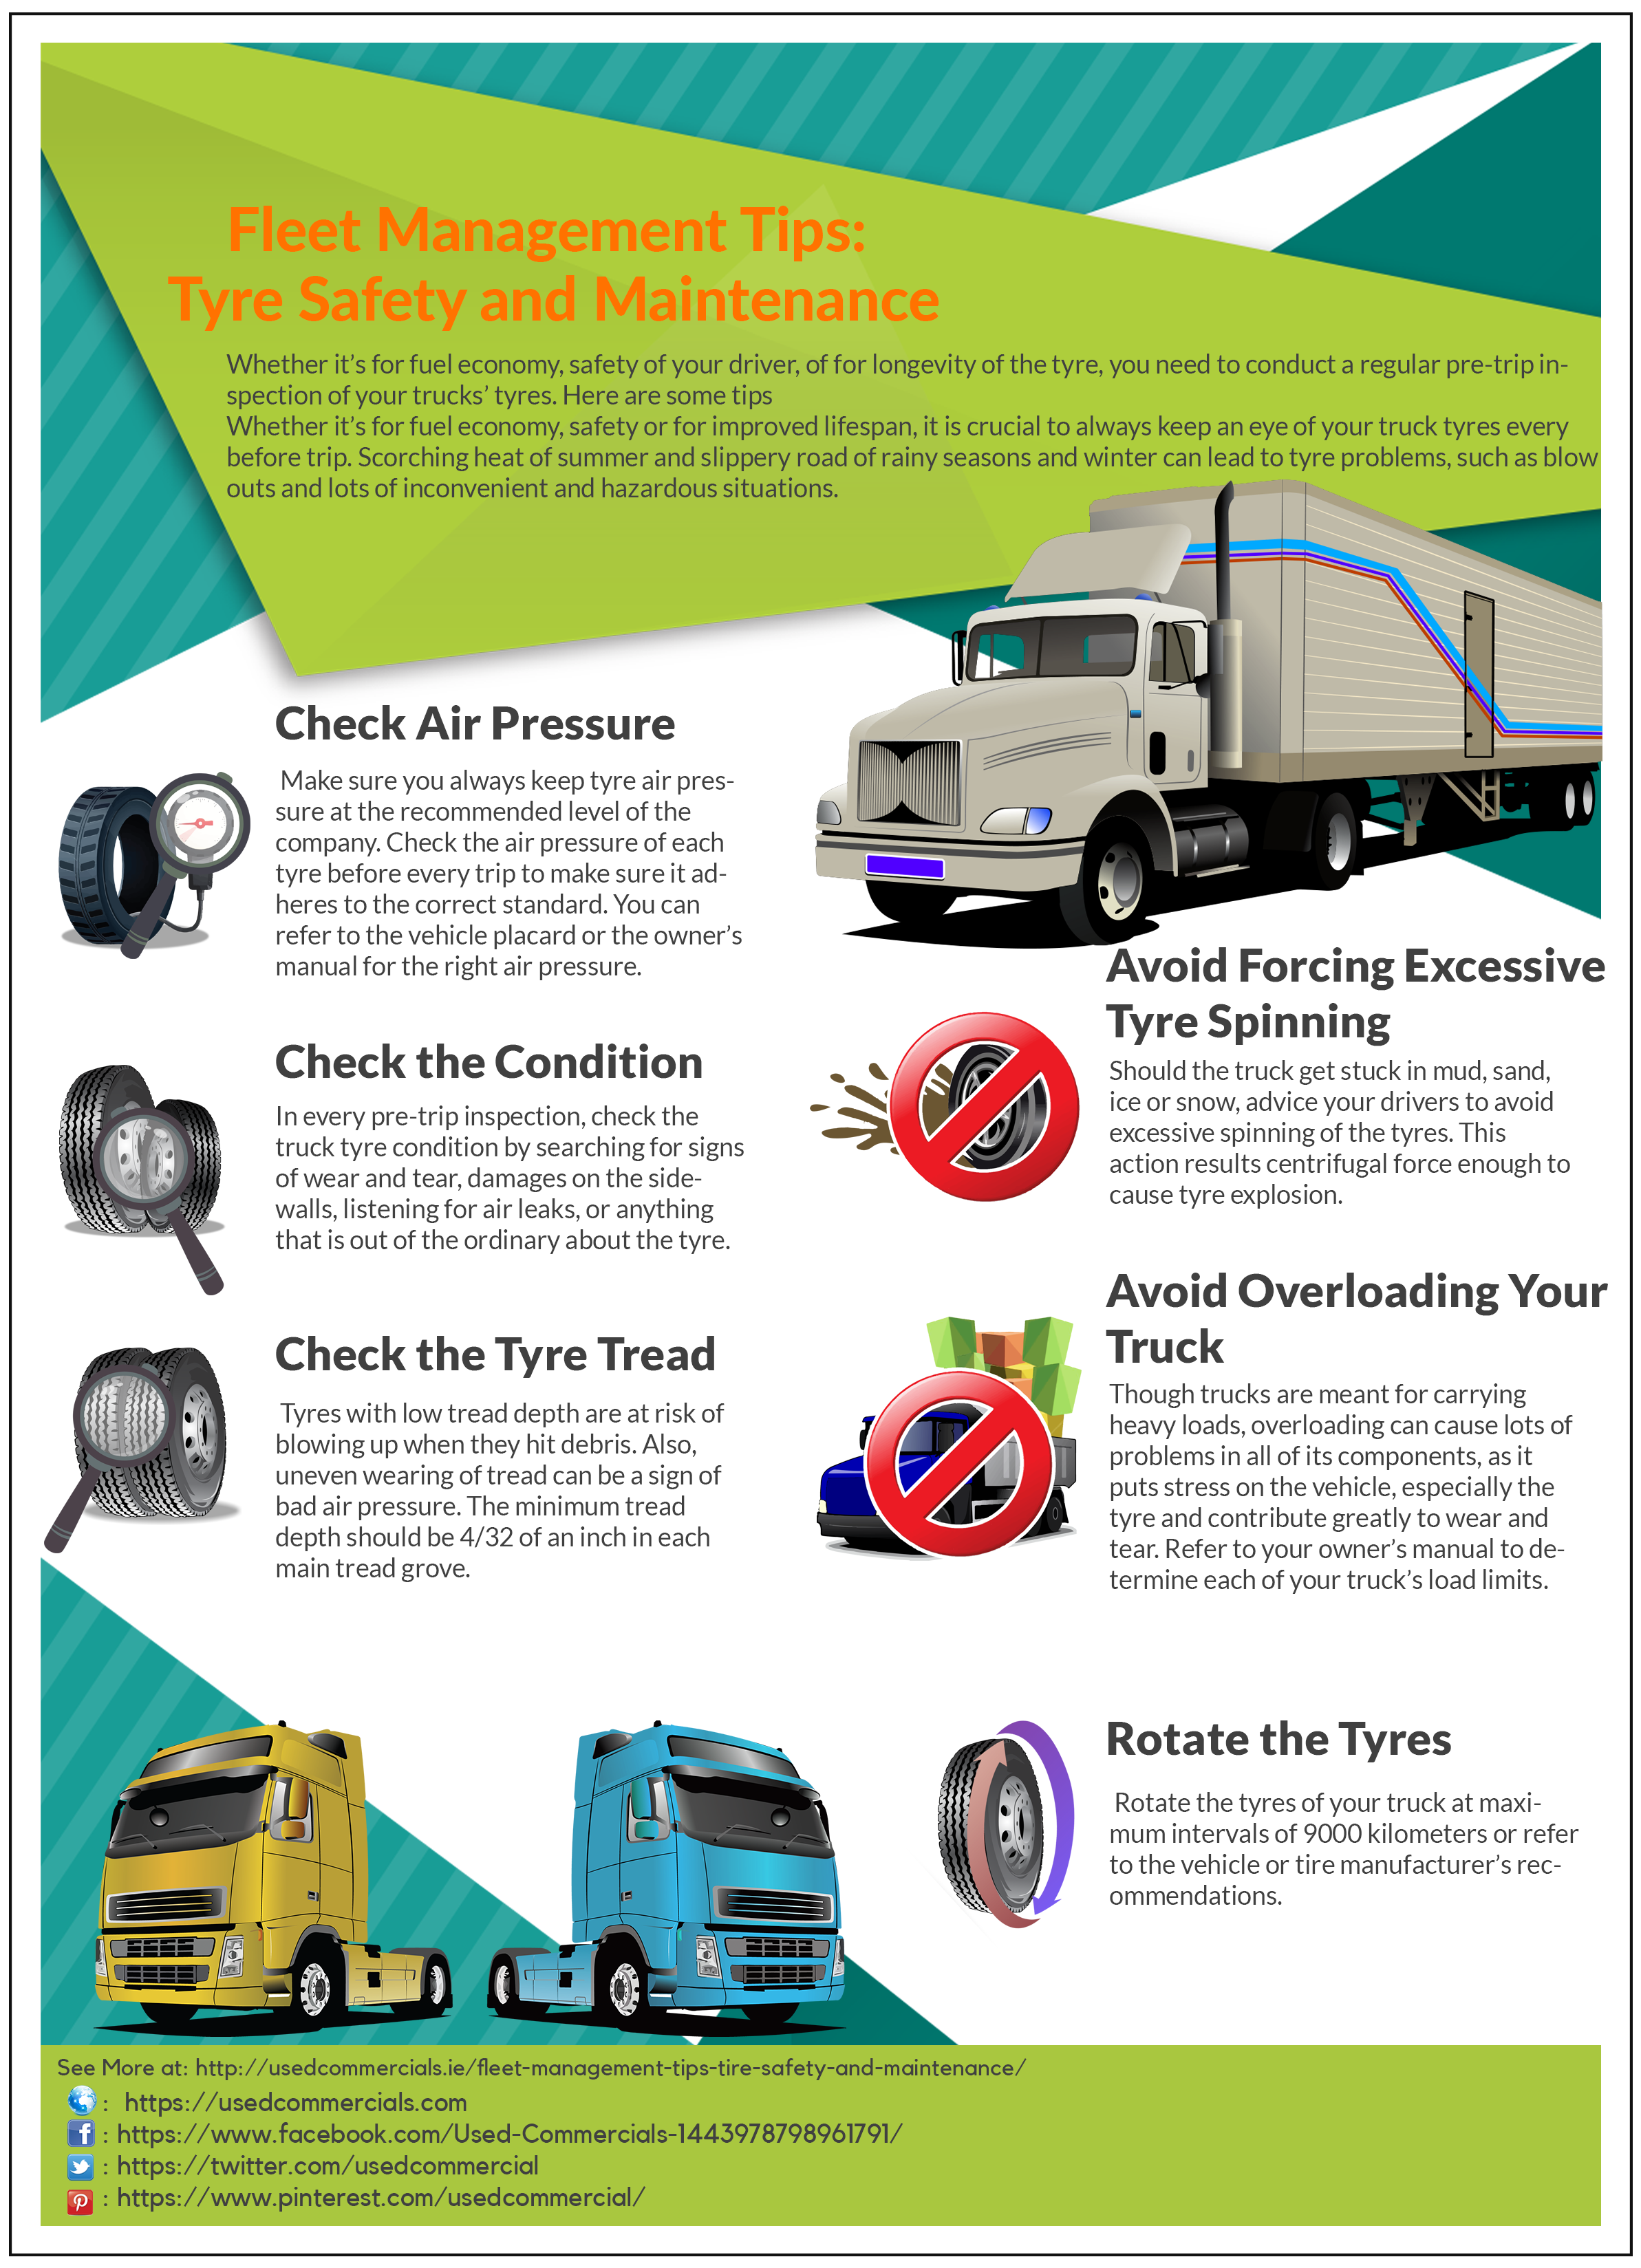 Whether it's for fuel economy, safety of your driver, of for longevity of  the tire, you need to conduct a regular pre-trip inspection of your trucks'  tires.